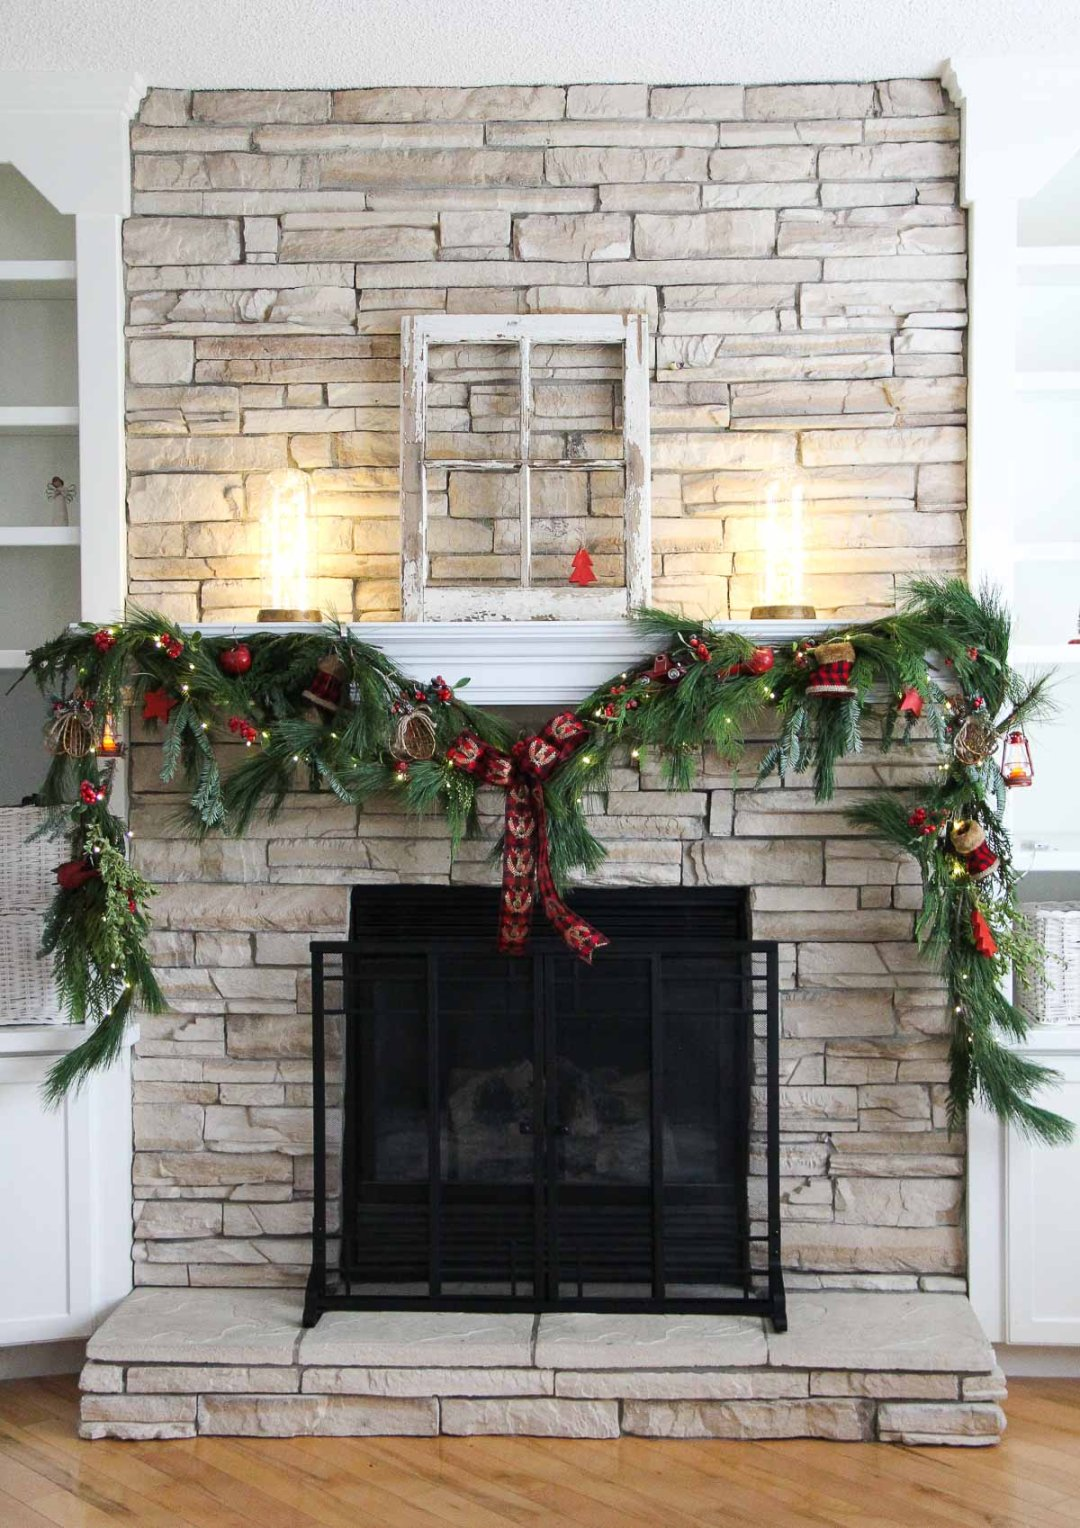 How To Diy A Fireplace Christmas Swag In 3 Steps Lowe S Canada